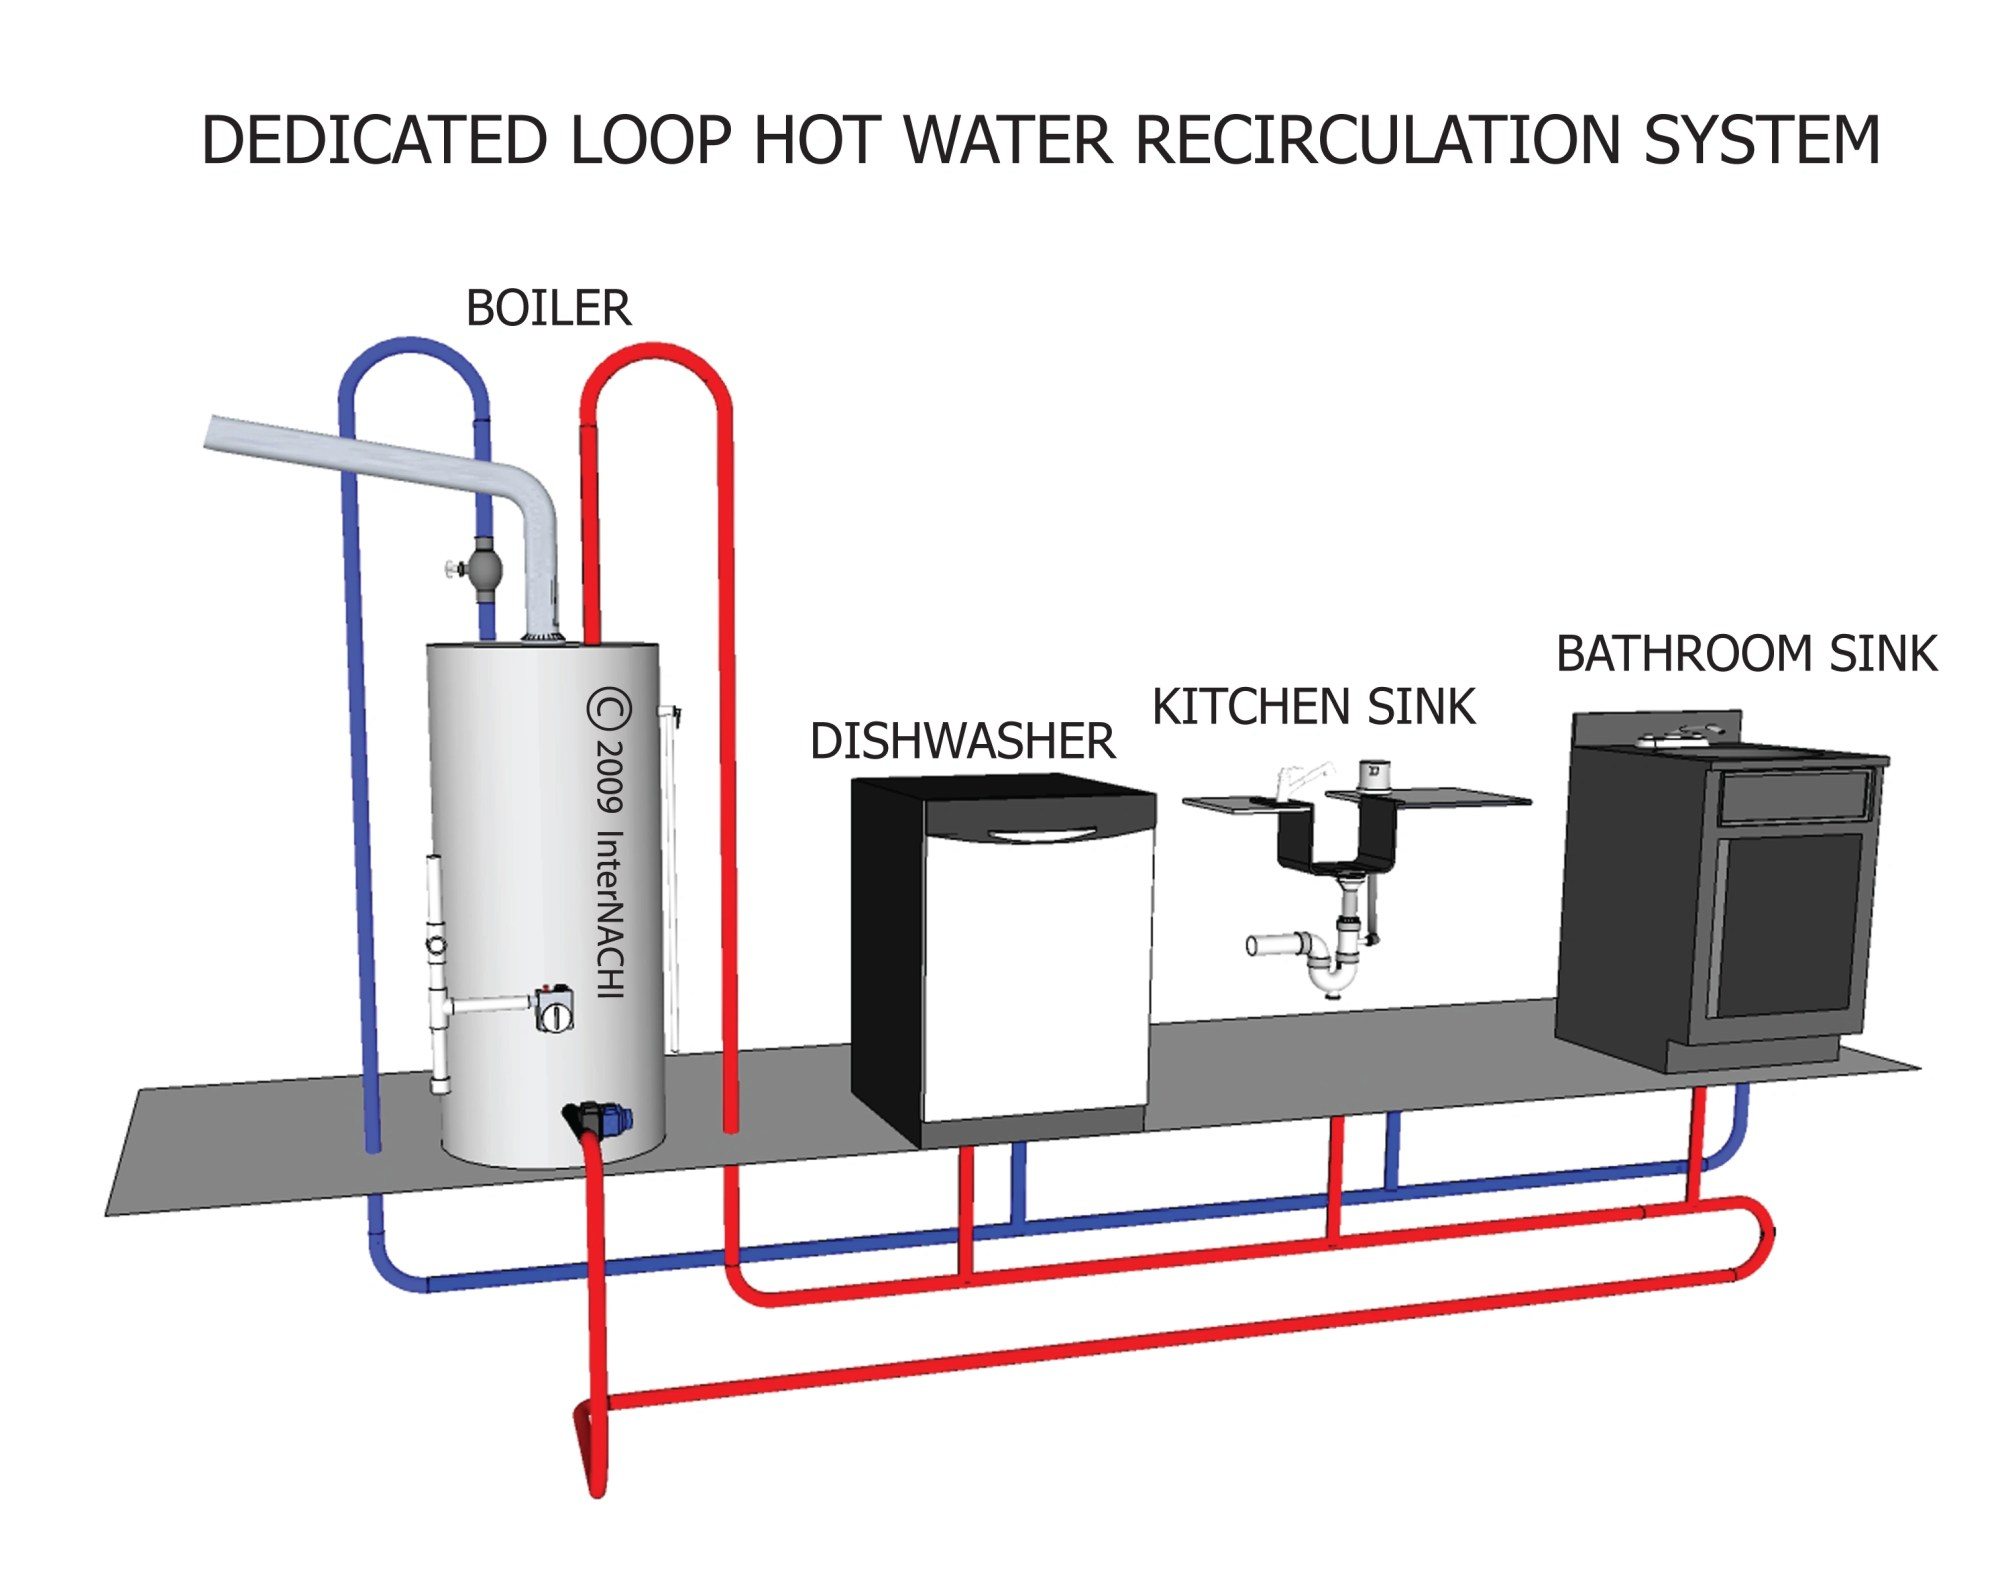 hight resolution of dedicated loop hot water recirculation system